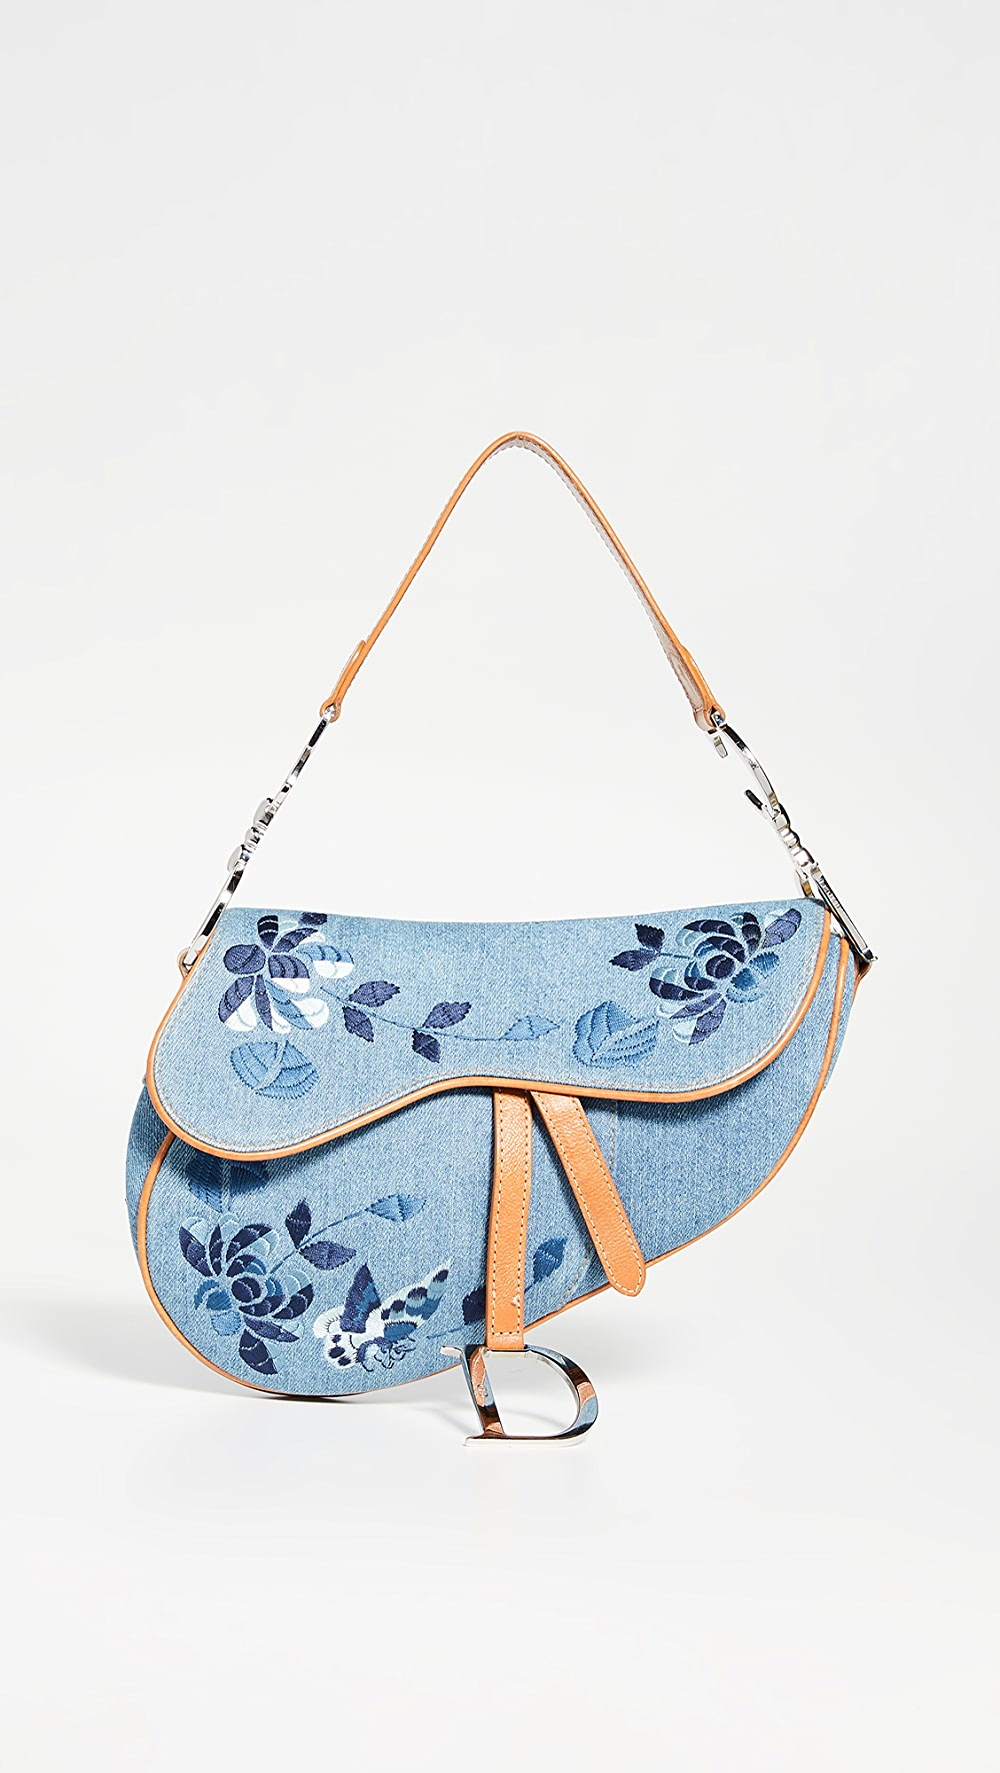 Just What Goes Around Comes Around - Dior Blue Denim Floral Saddle Bag Discounts Sale